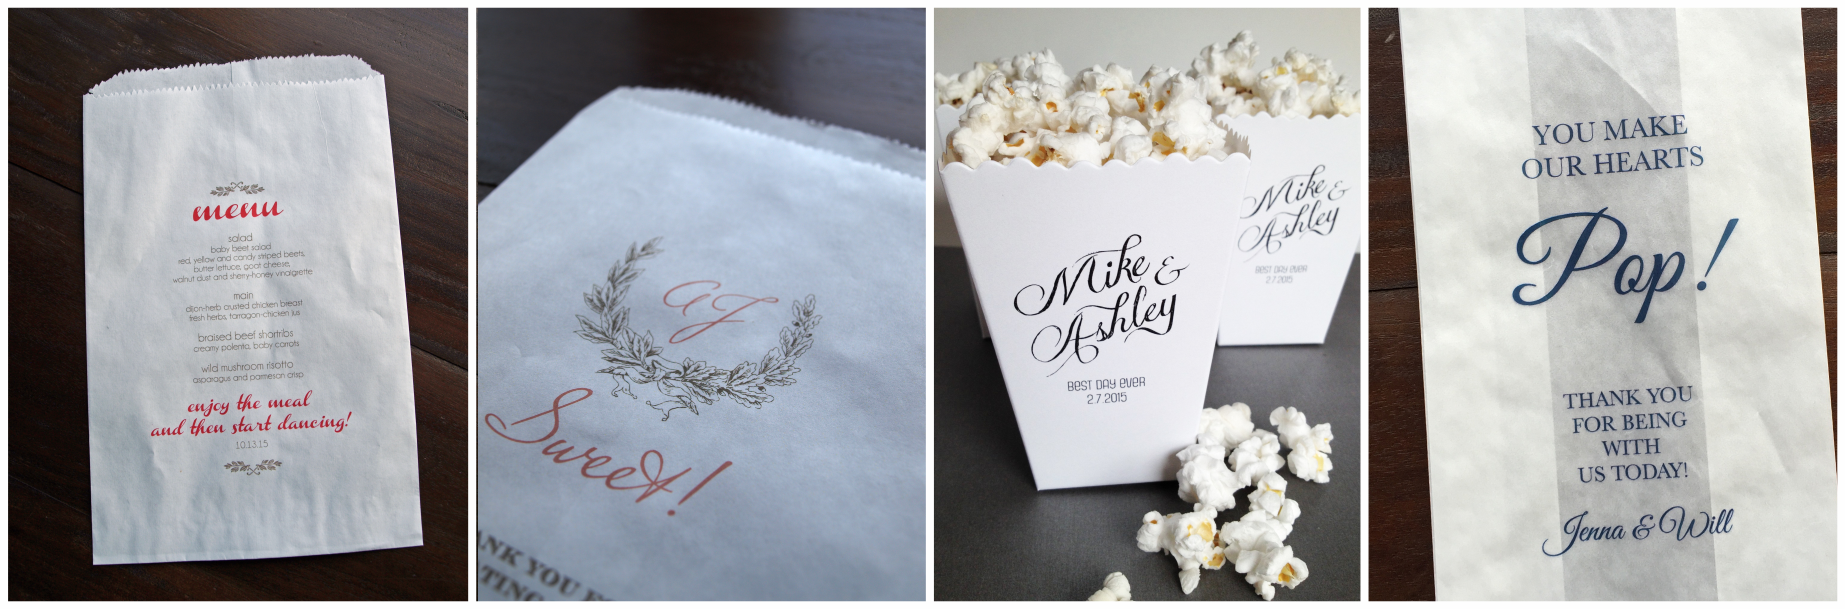 erickson design popcorn and sweets bags